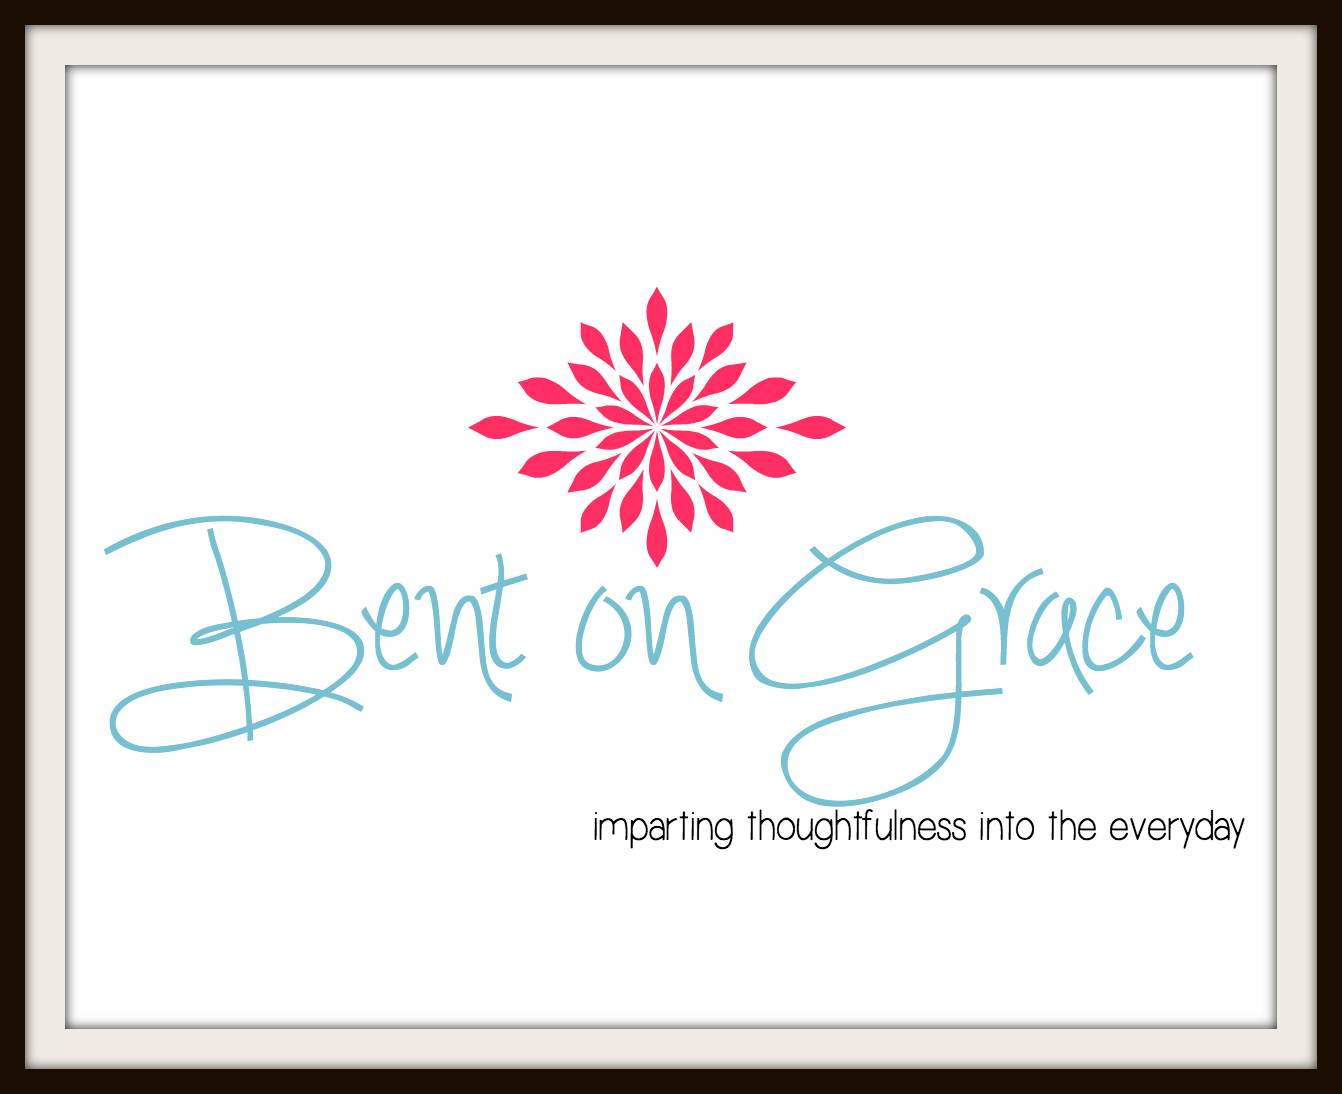 Bent On Grace